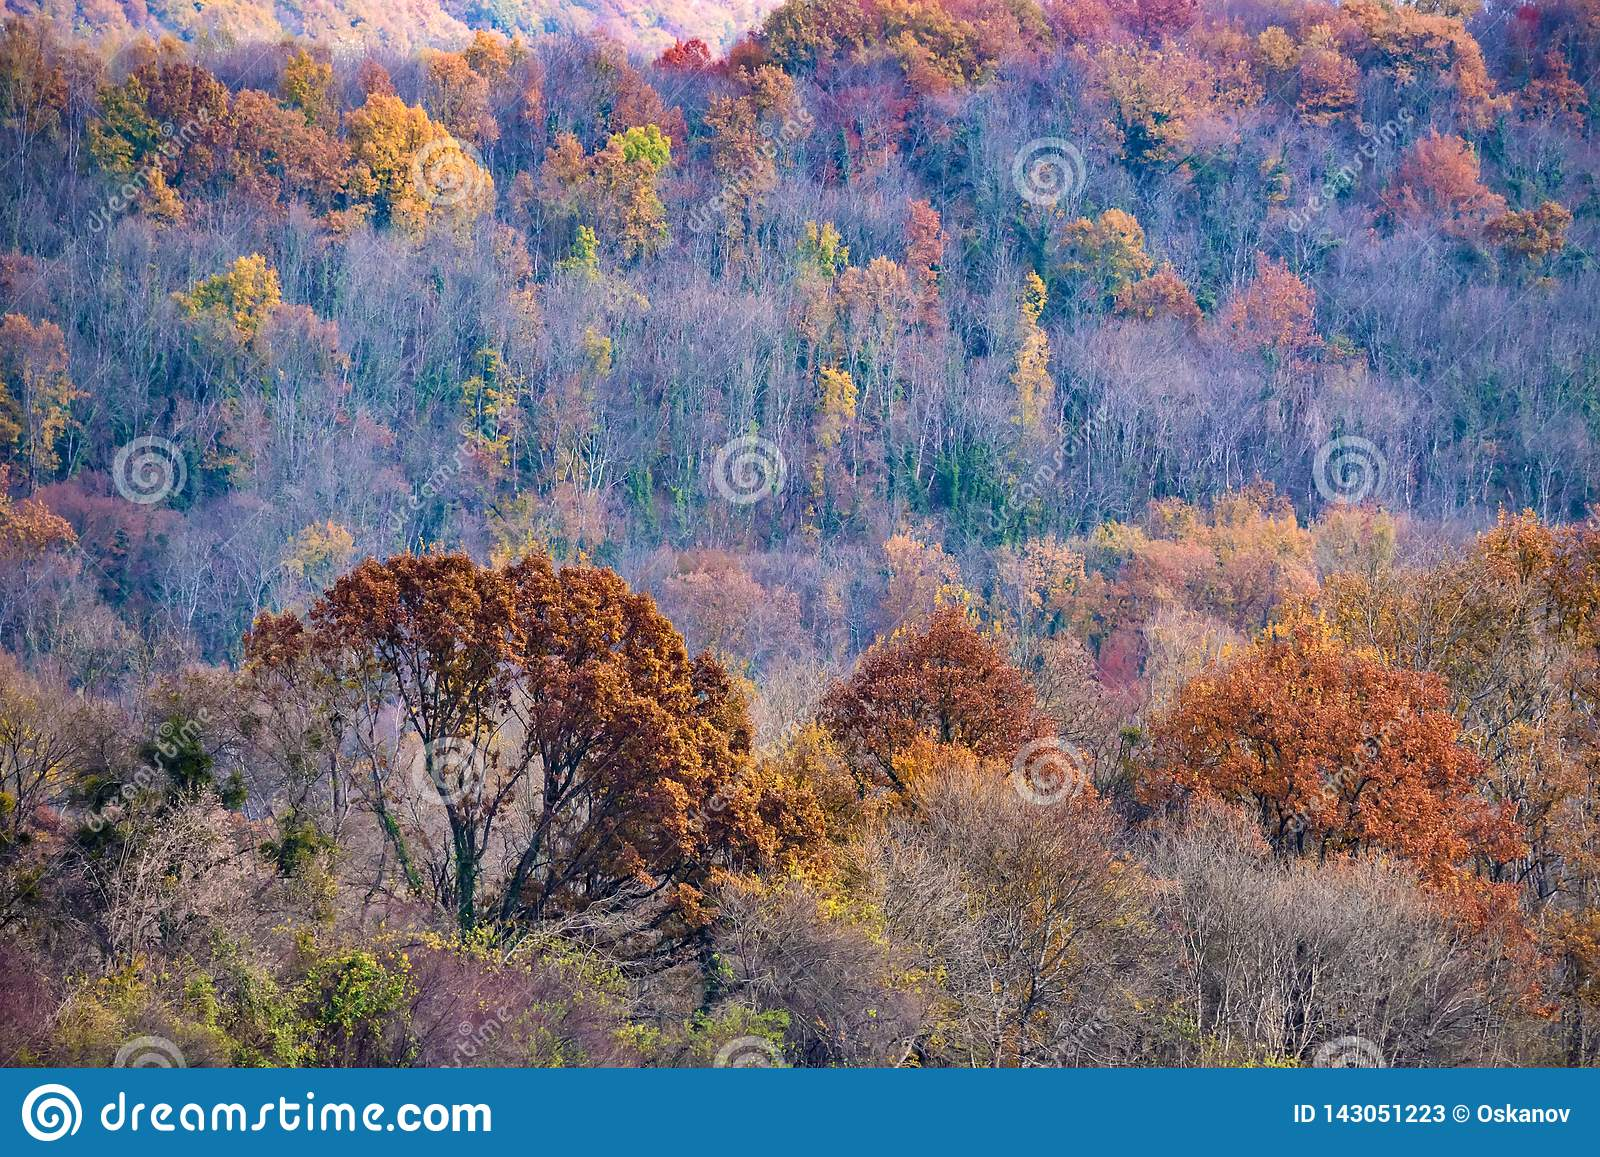 Scenic landscape of autumn forest in mountains